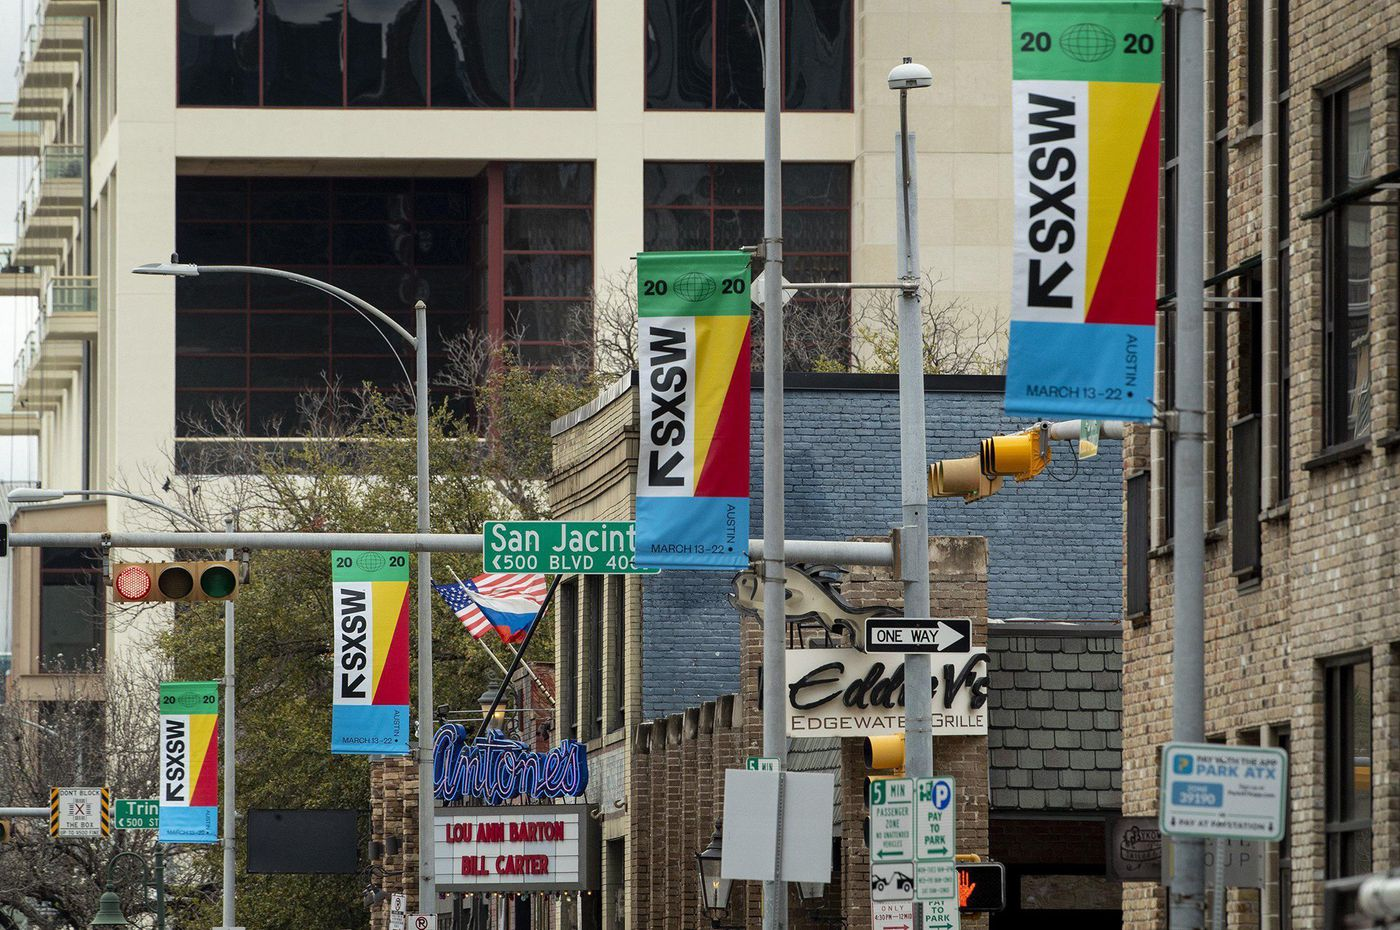 Coronavirus fears have prompted officials to cancel the iconic South by Southwest festival in Austin, Texas, just seven days before the 2020 event was scheduled to start.